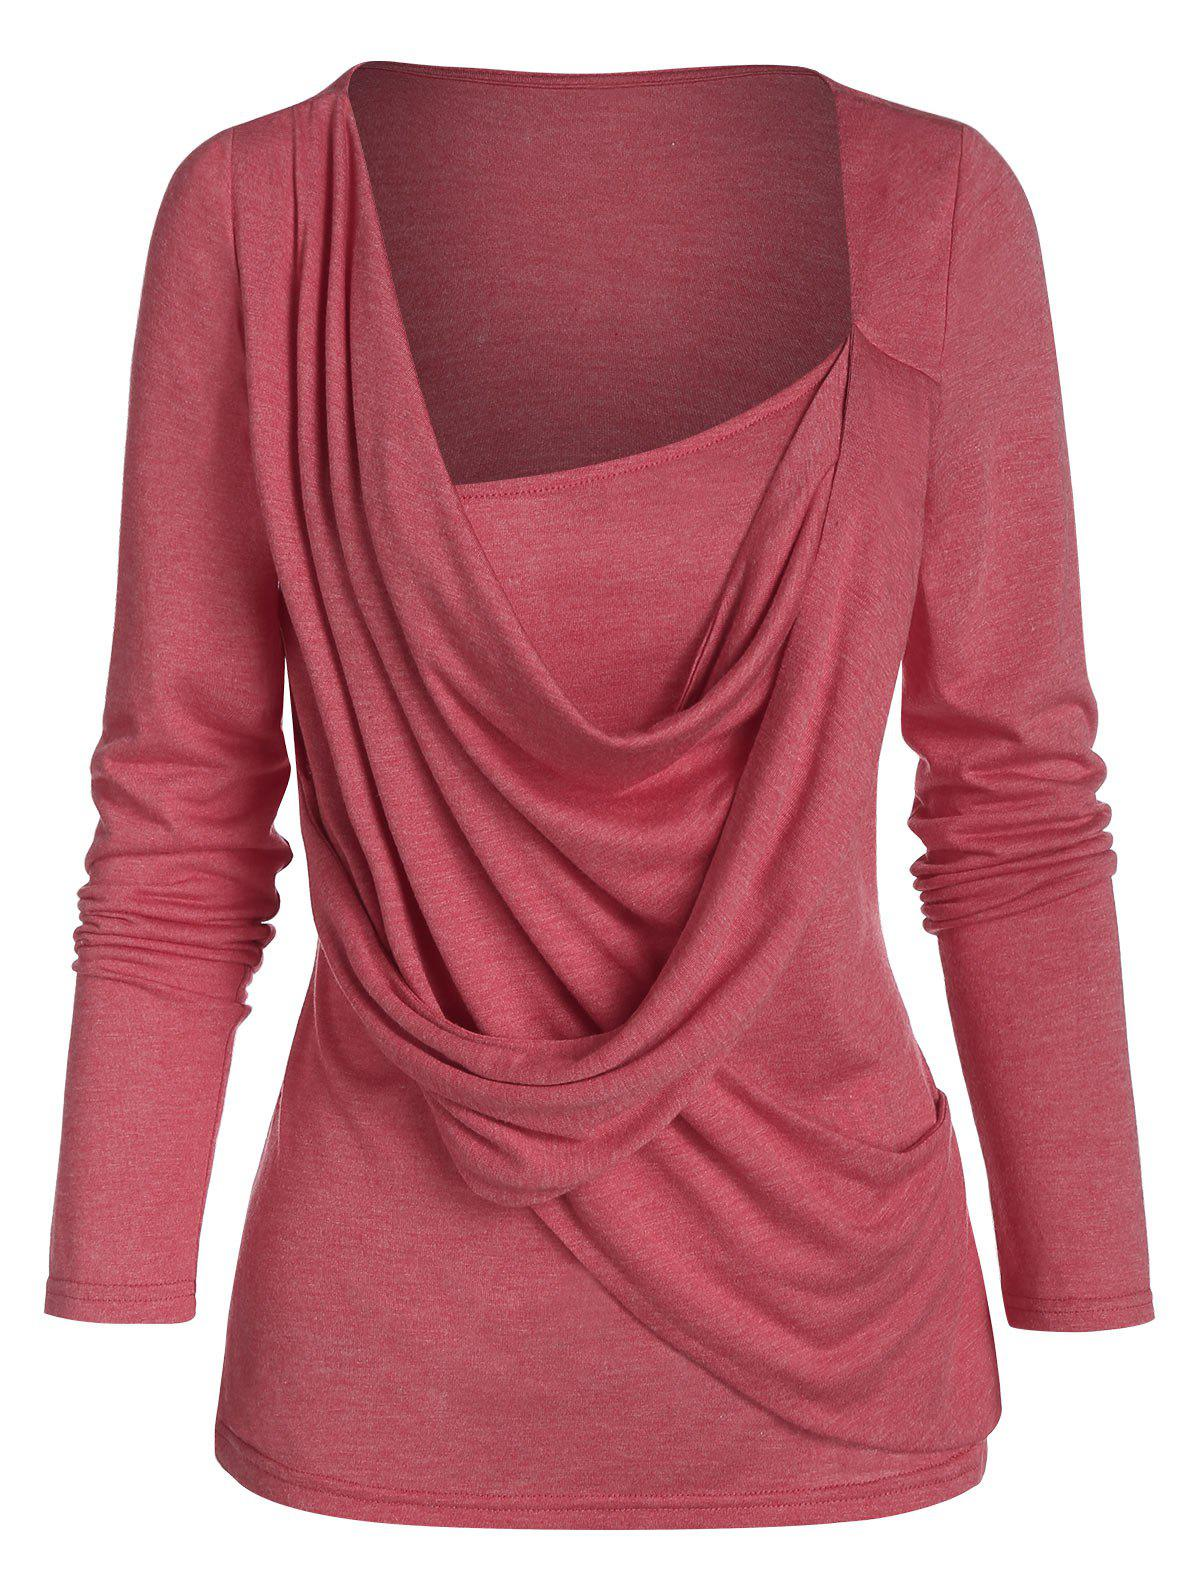 Drape Front Long Sleeve Casual T Shirt - RED L